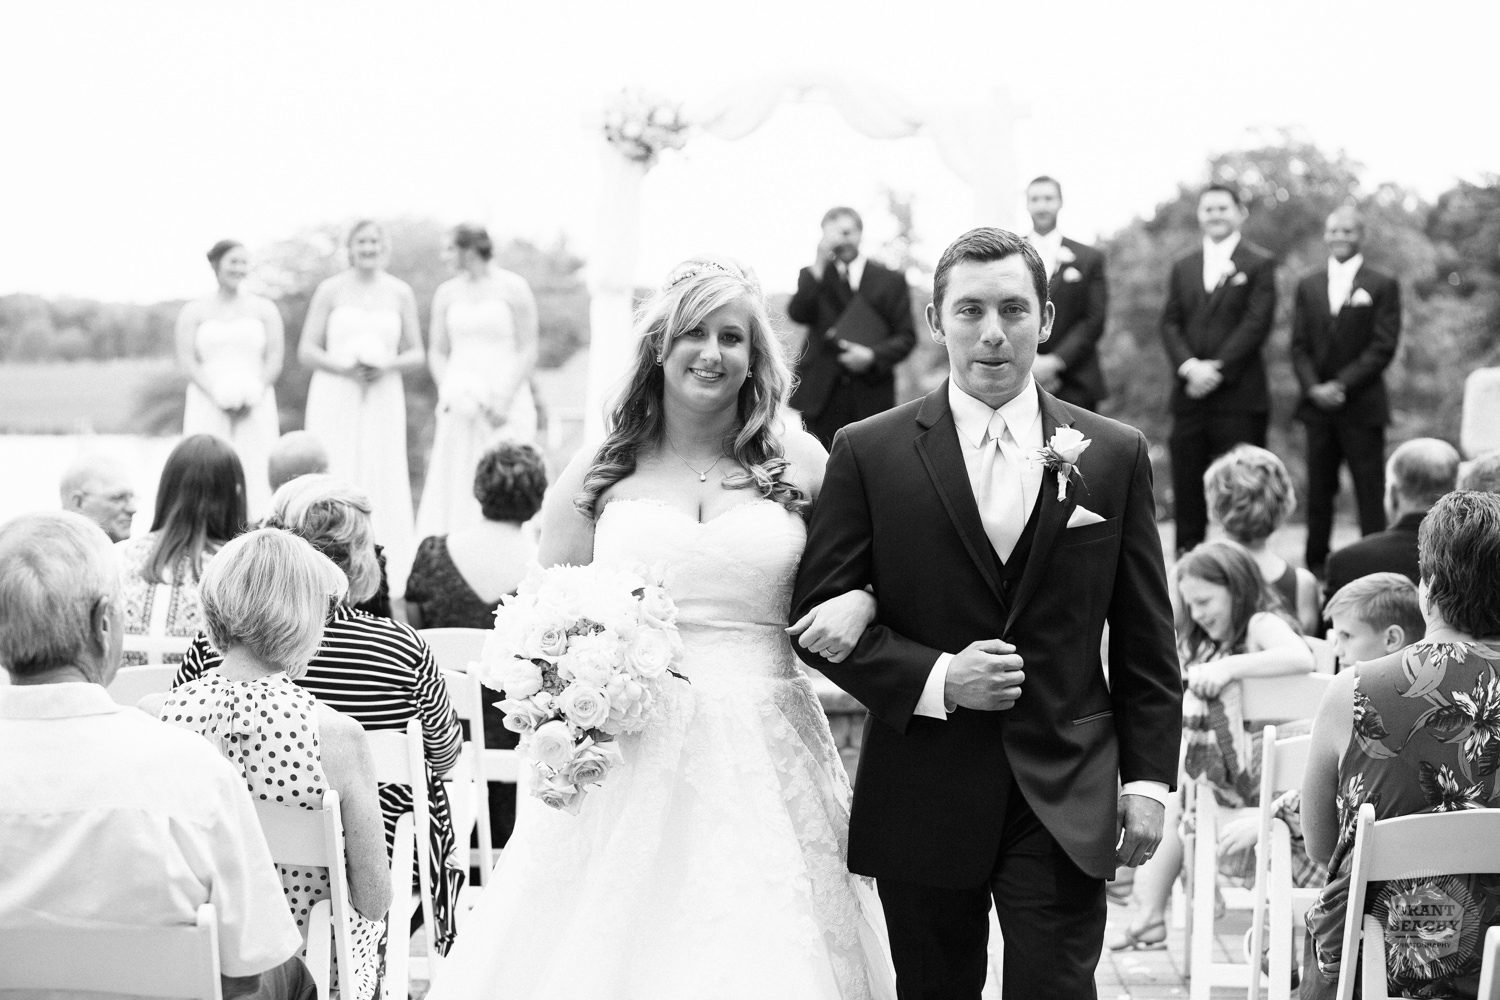 Grant Beachy wedding photography southbend goshen chicago-33.jpg